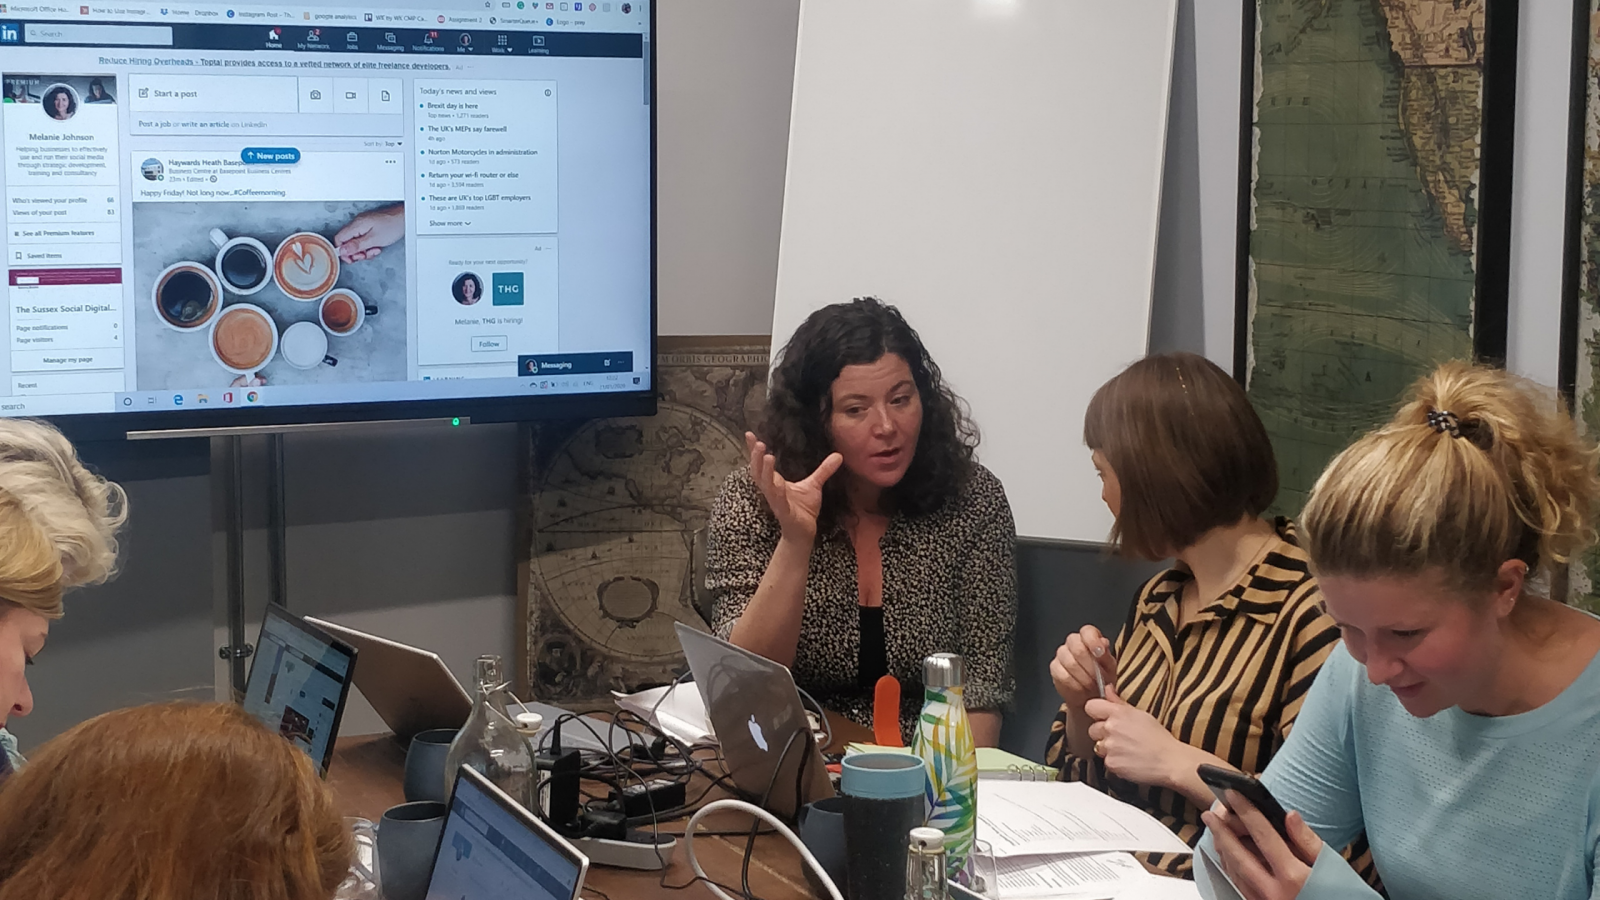 A photo of a social media training session